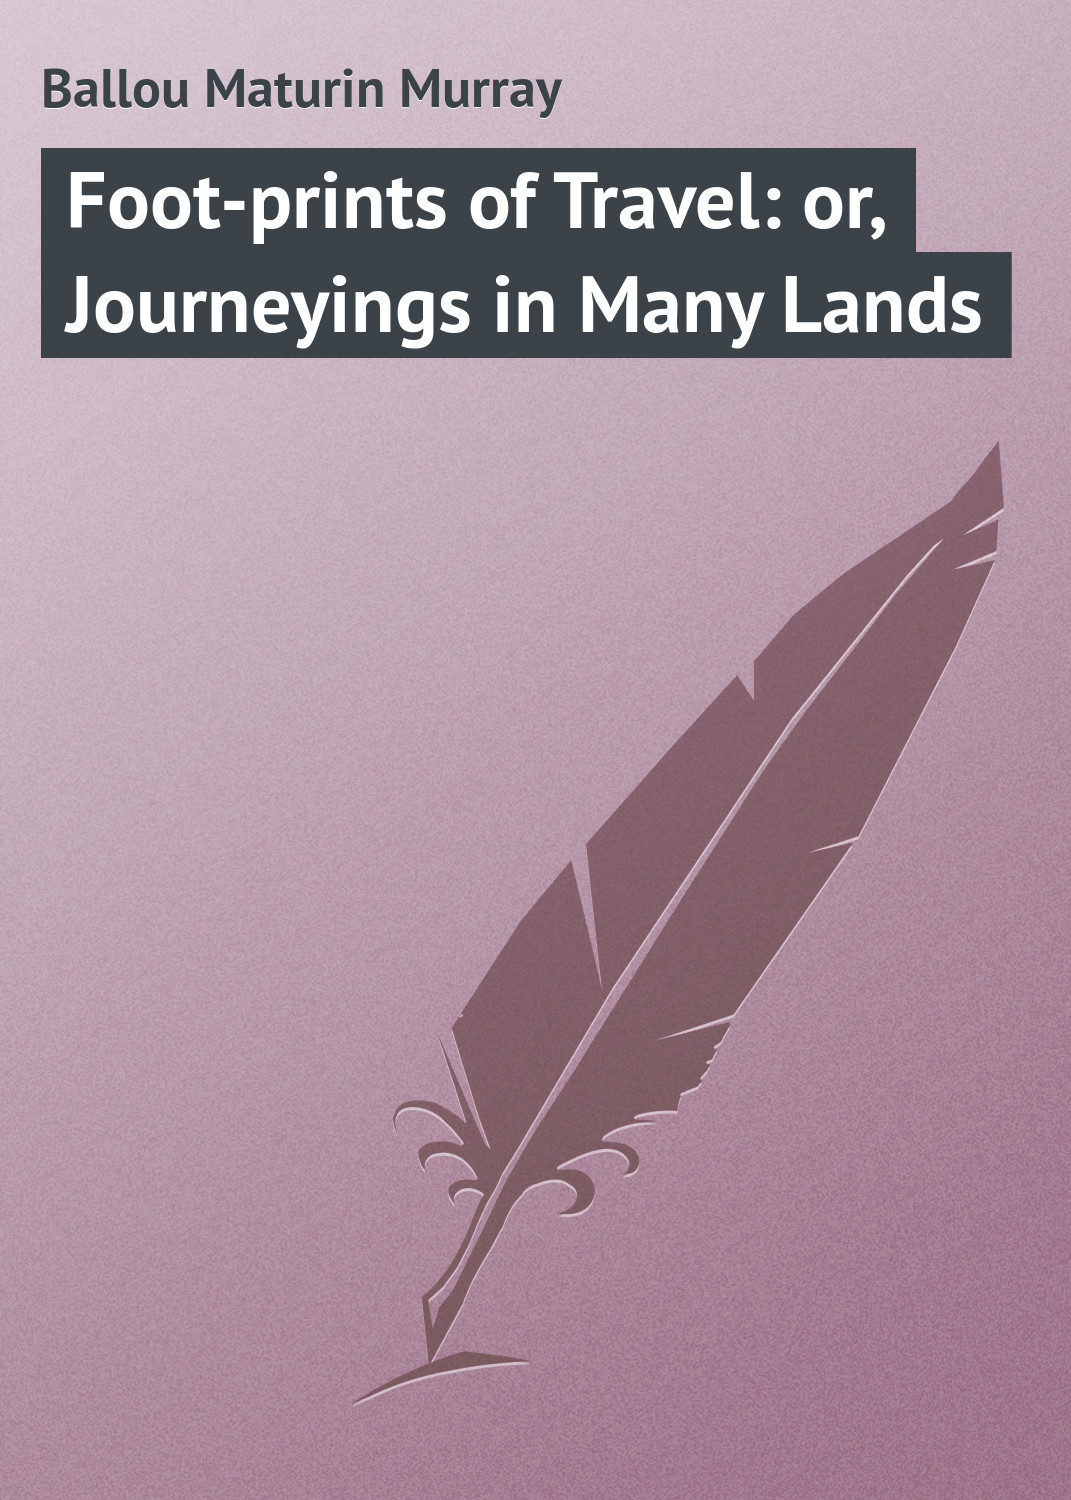 лучшая цена Ballou Maturin Murray Foot-prints of Travel: or, Journeyings in Many Lands